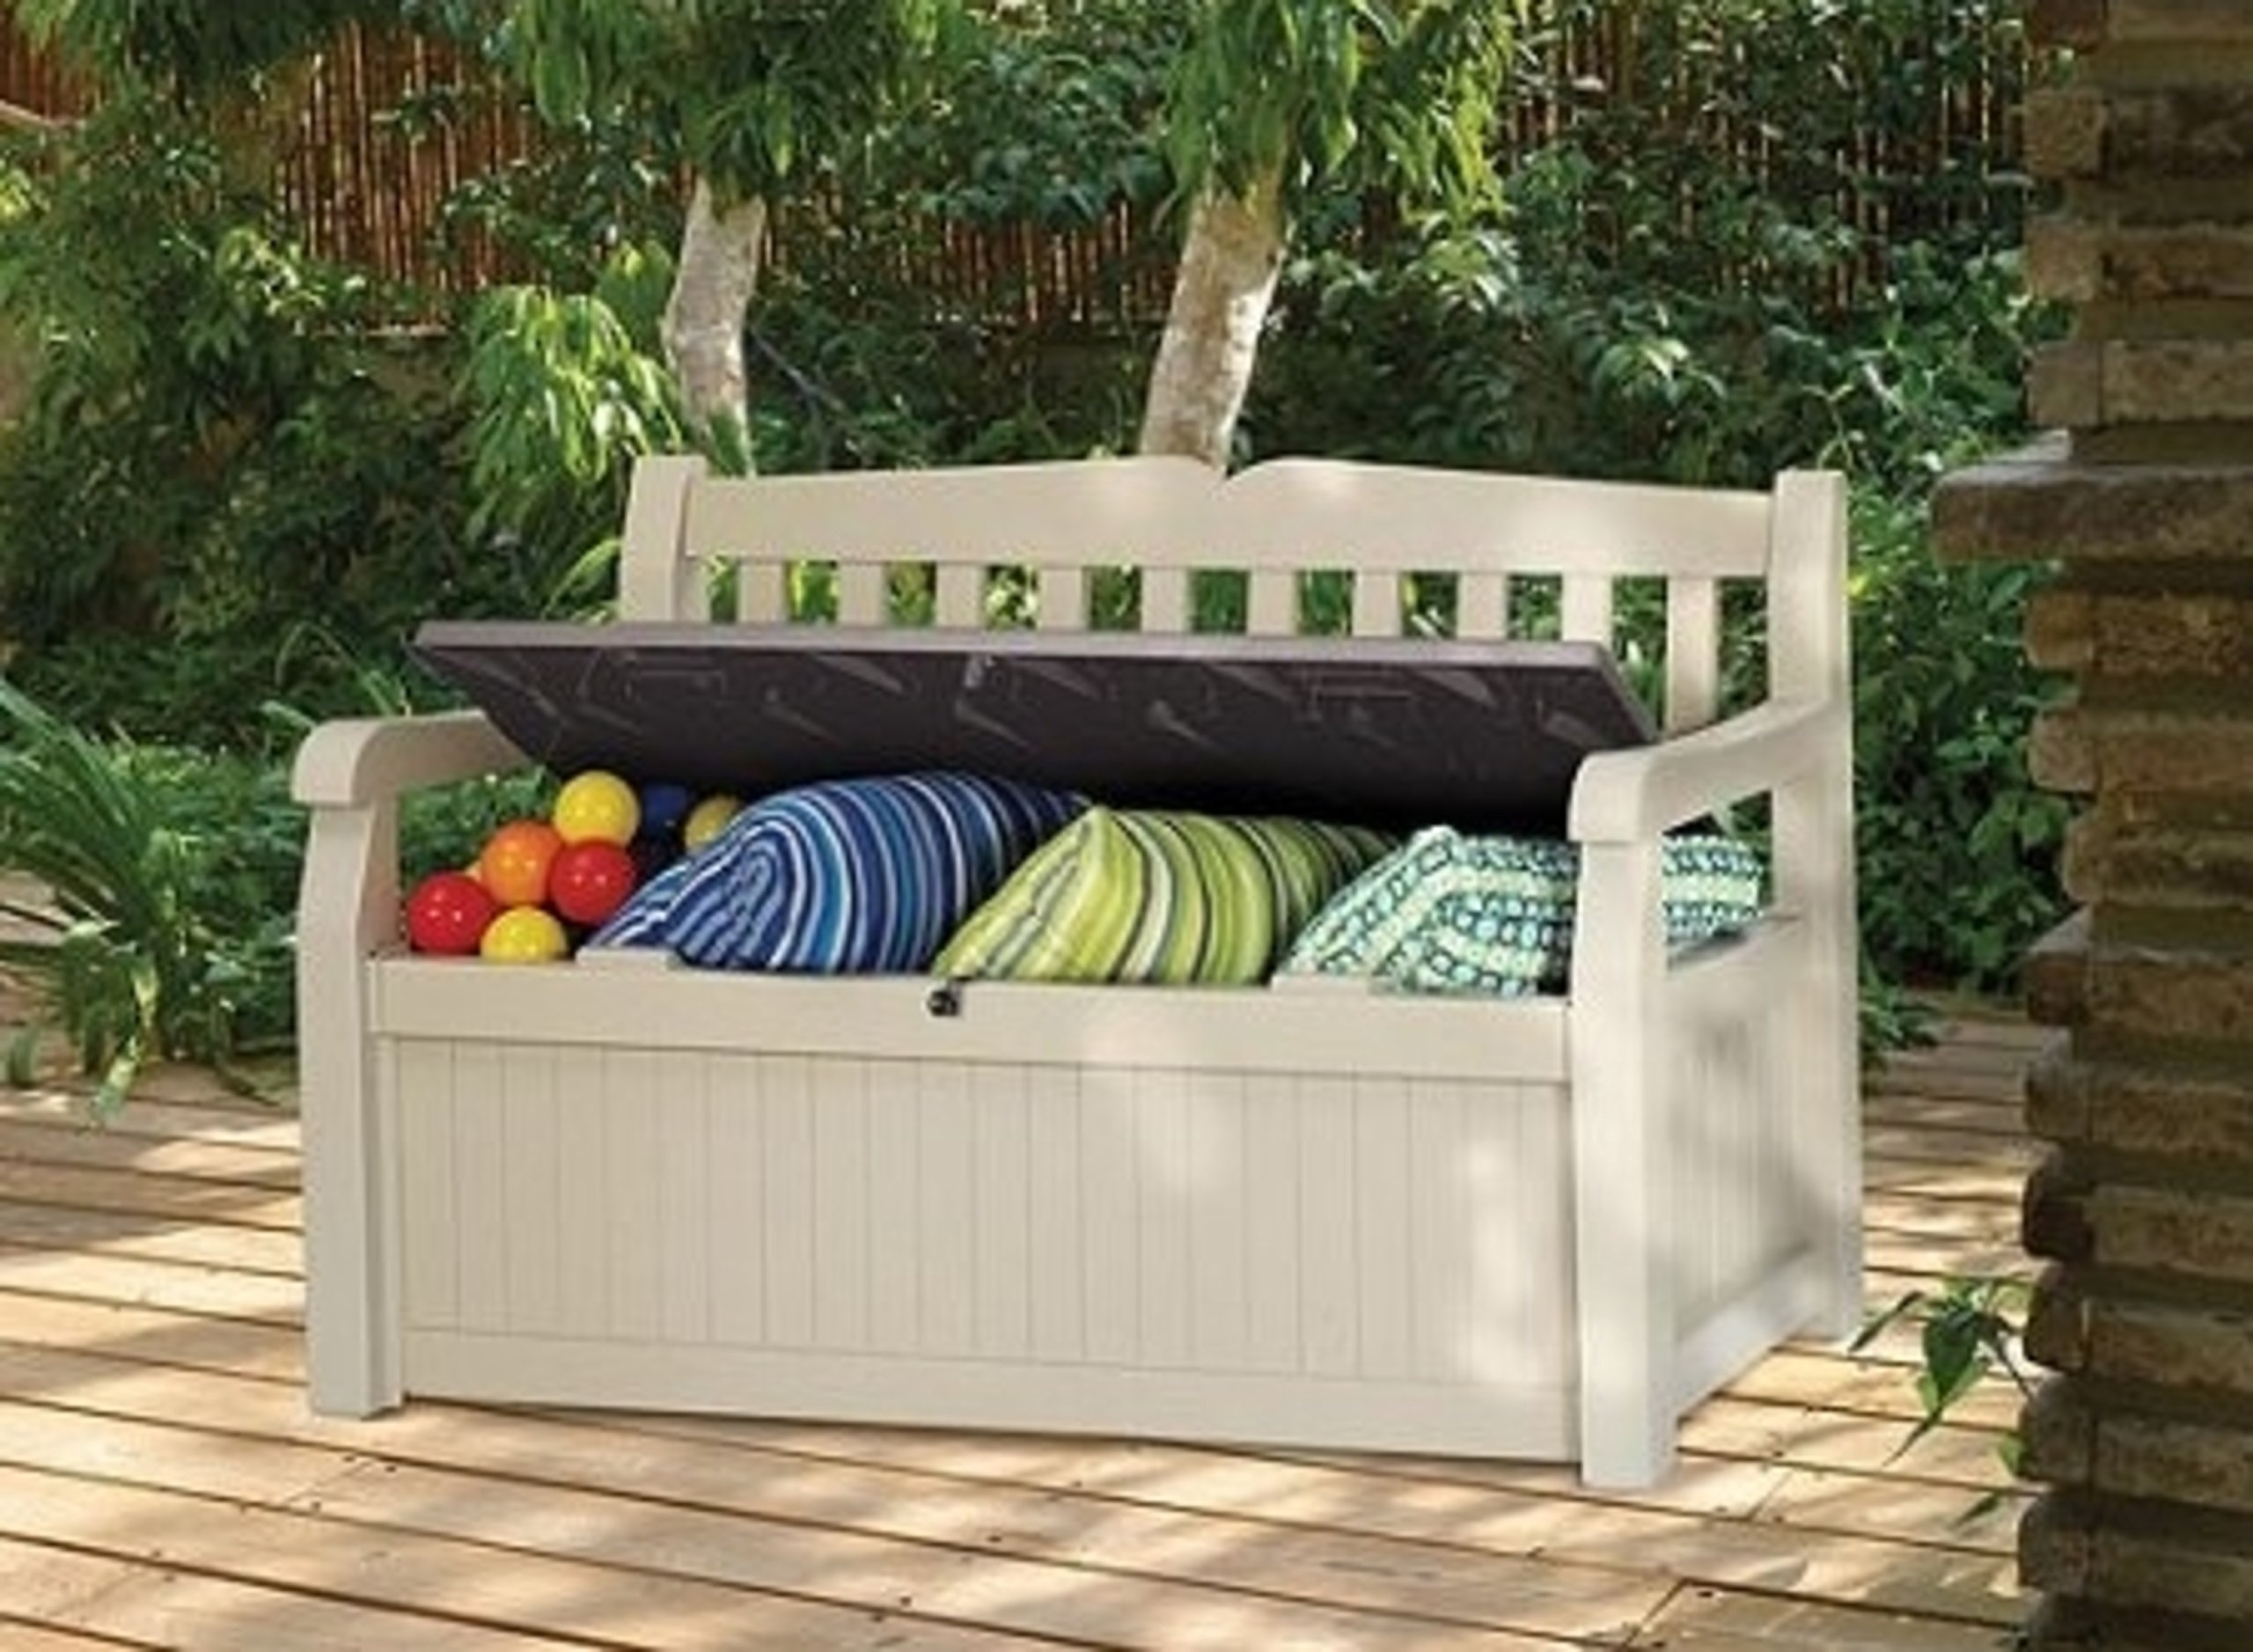 Outdoor Resin All Weather Plastic Seating & Storage Bench by KeterEden (Image #2)